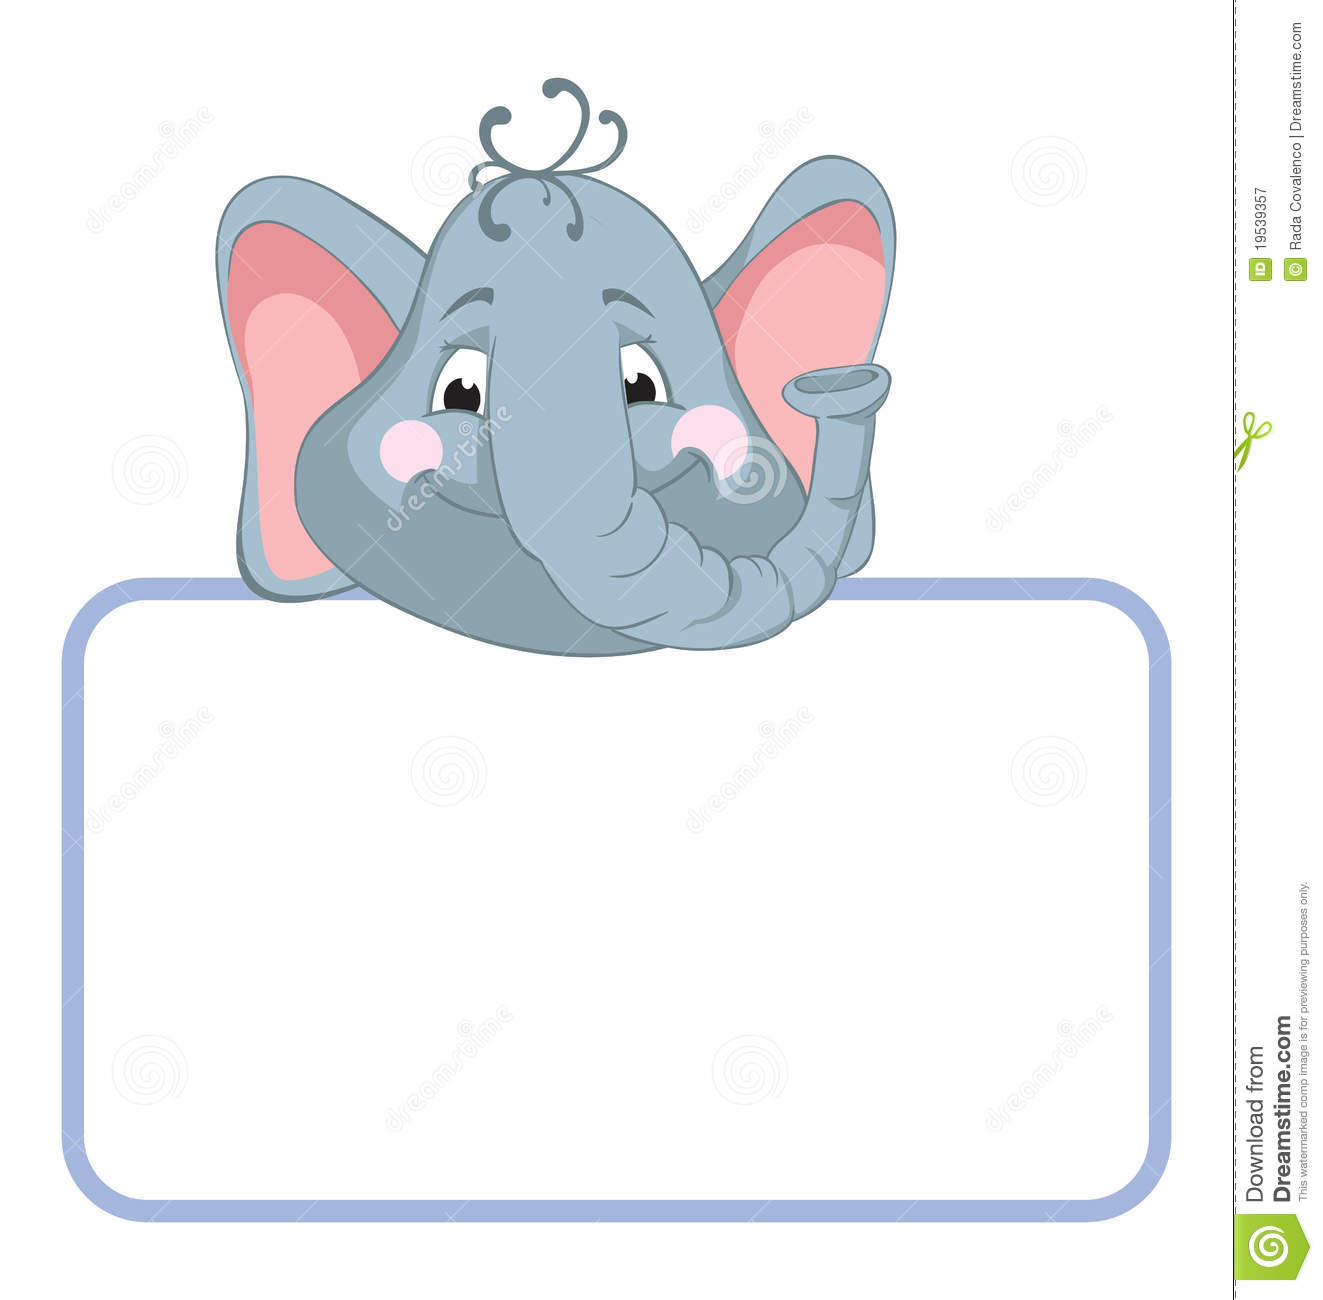 elephant baby animal banner royalty free stock photography image 19539357 birthday clip art borders free birthday clip art borders and frames